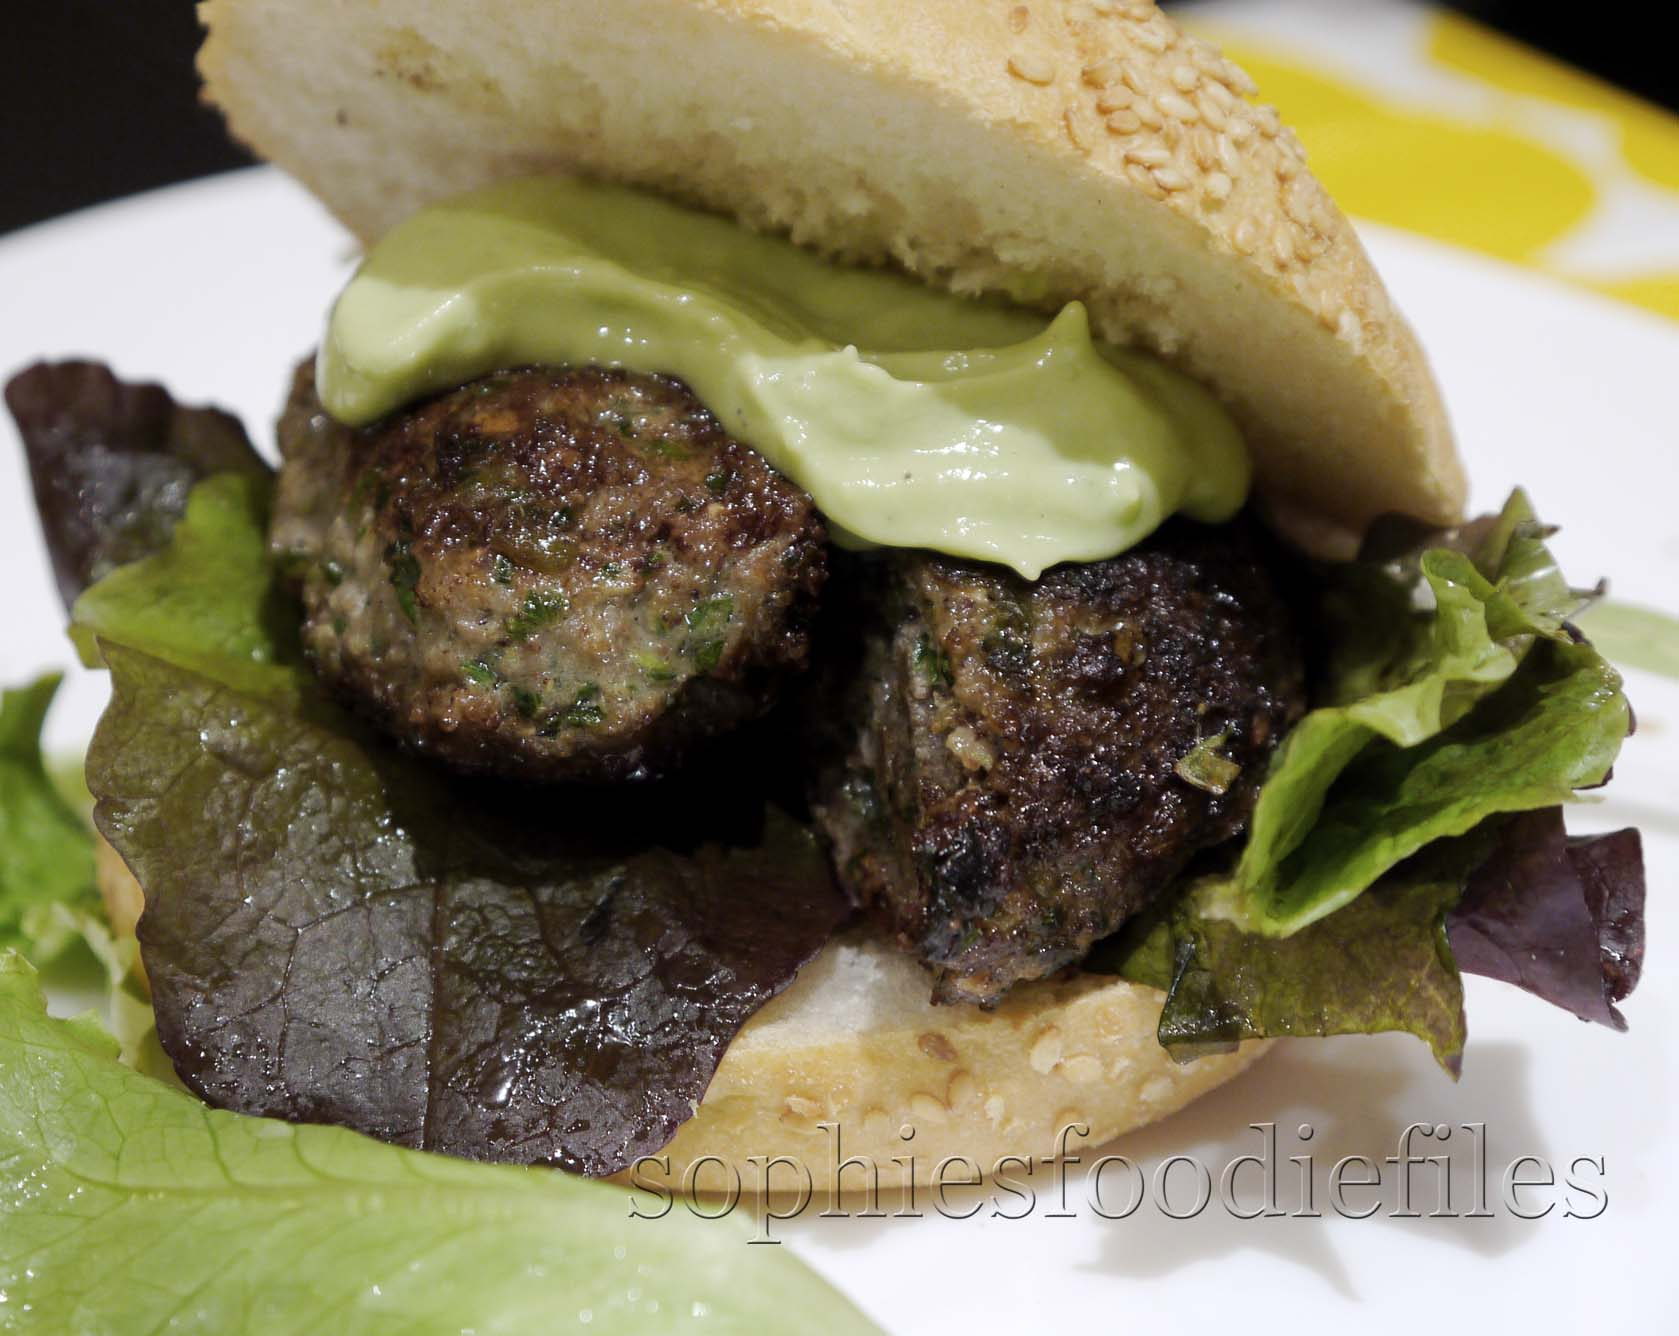 divine, juicy lamb burger topped with a tasty green avocado ...